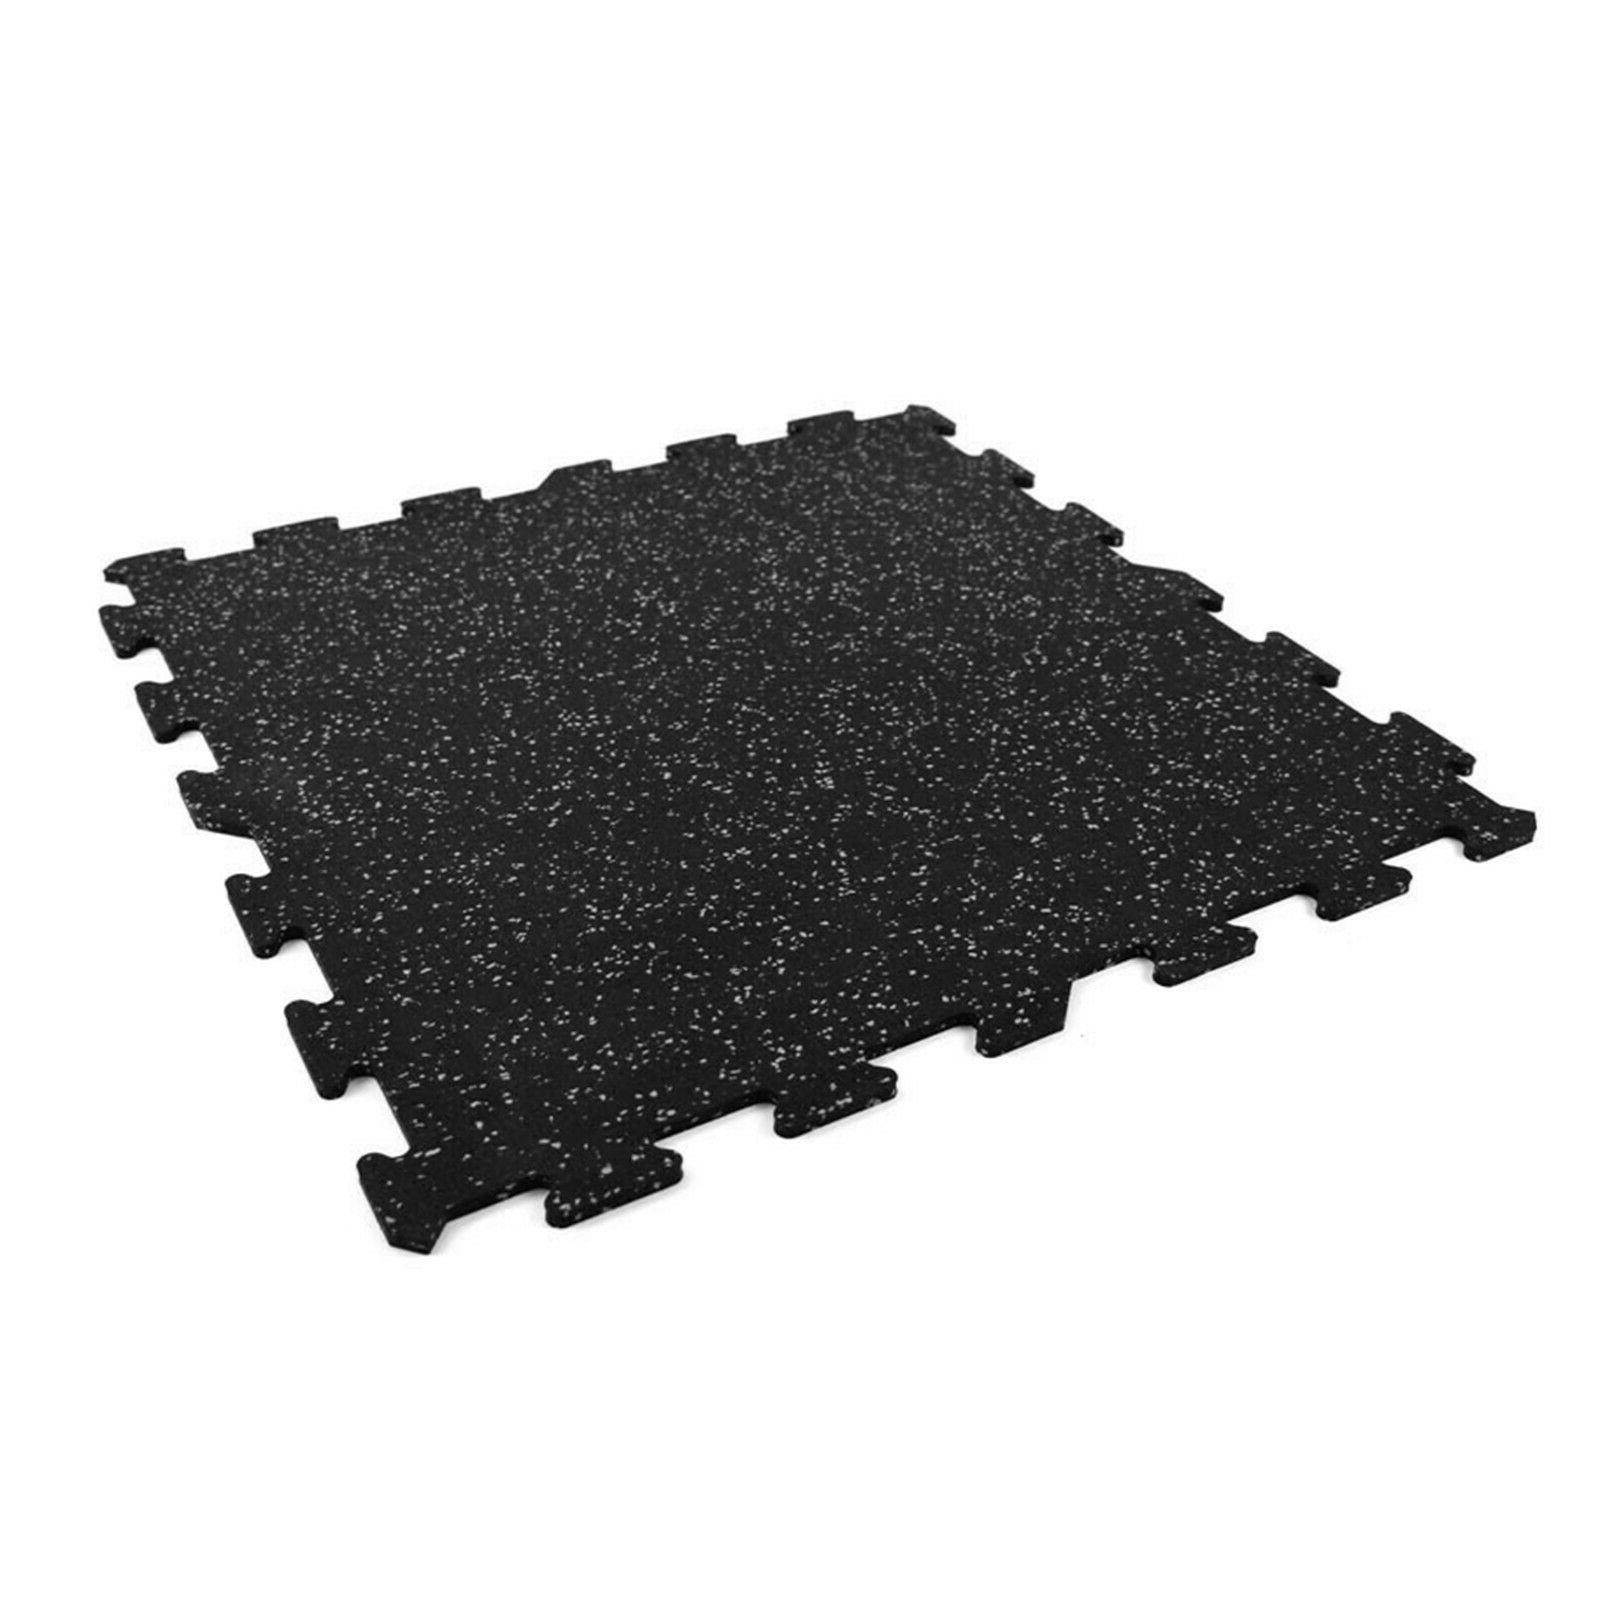 FlooringInc 8mm Strong Rubber Tiles - Gym Flooring For Exerc